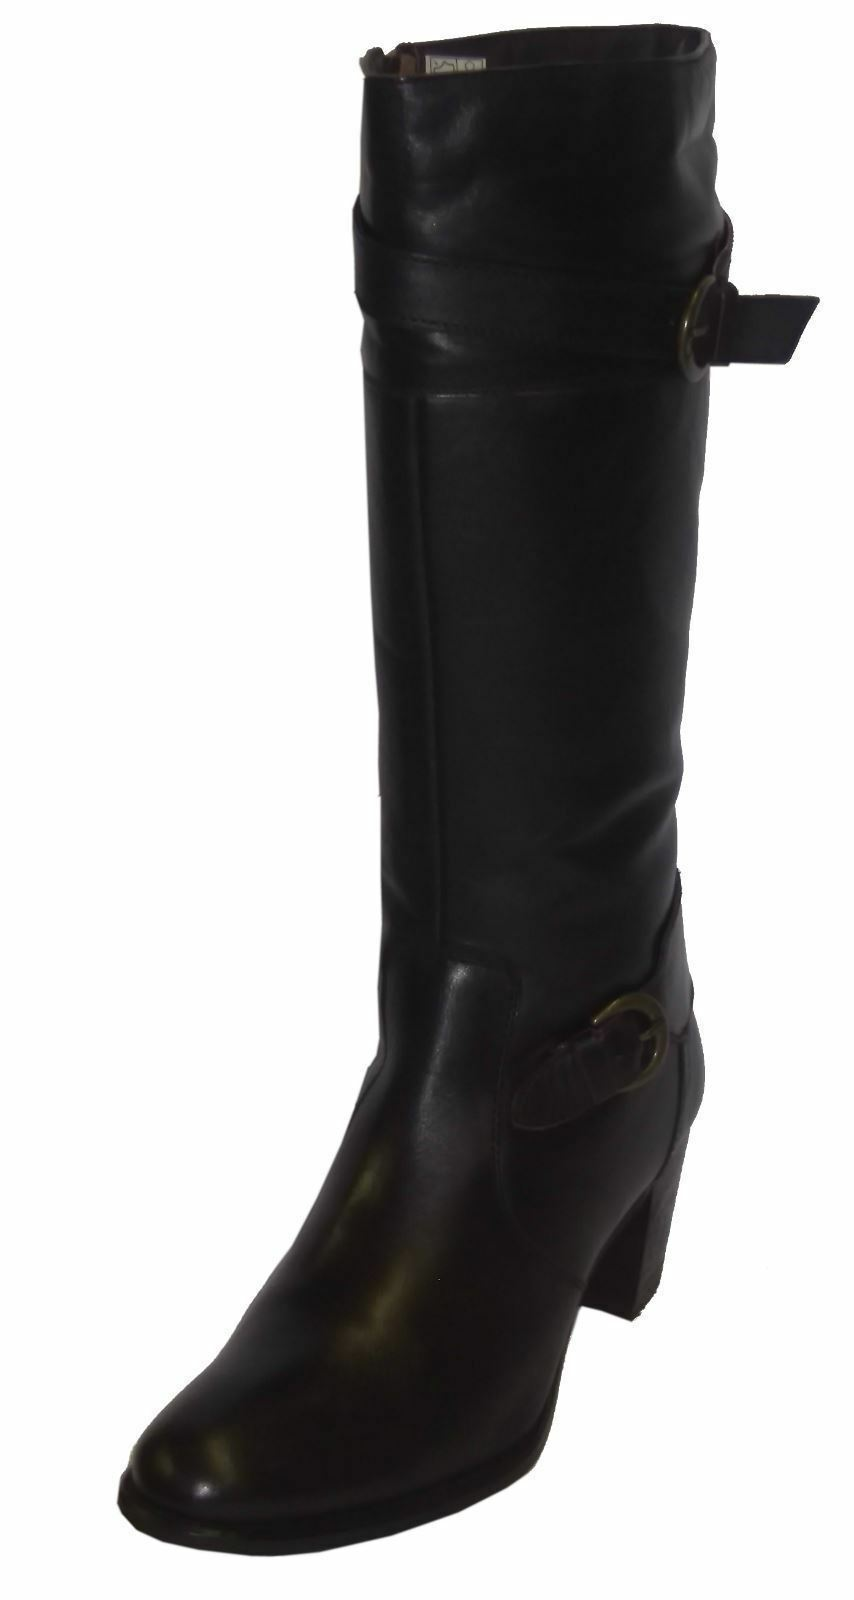 Ladies 2080 Zip-Up Marrón Leather Knee-High Heeled Zip-Up 2080 Bota by Damen Stiefel £35.00 c622c0